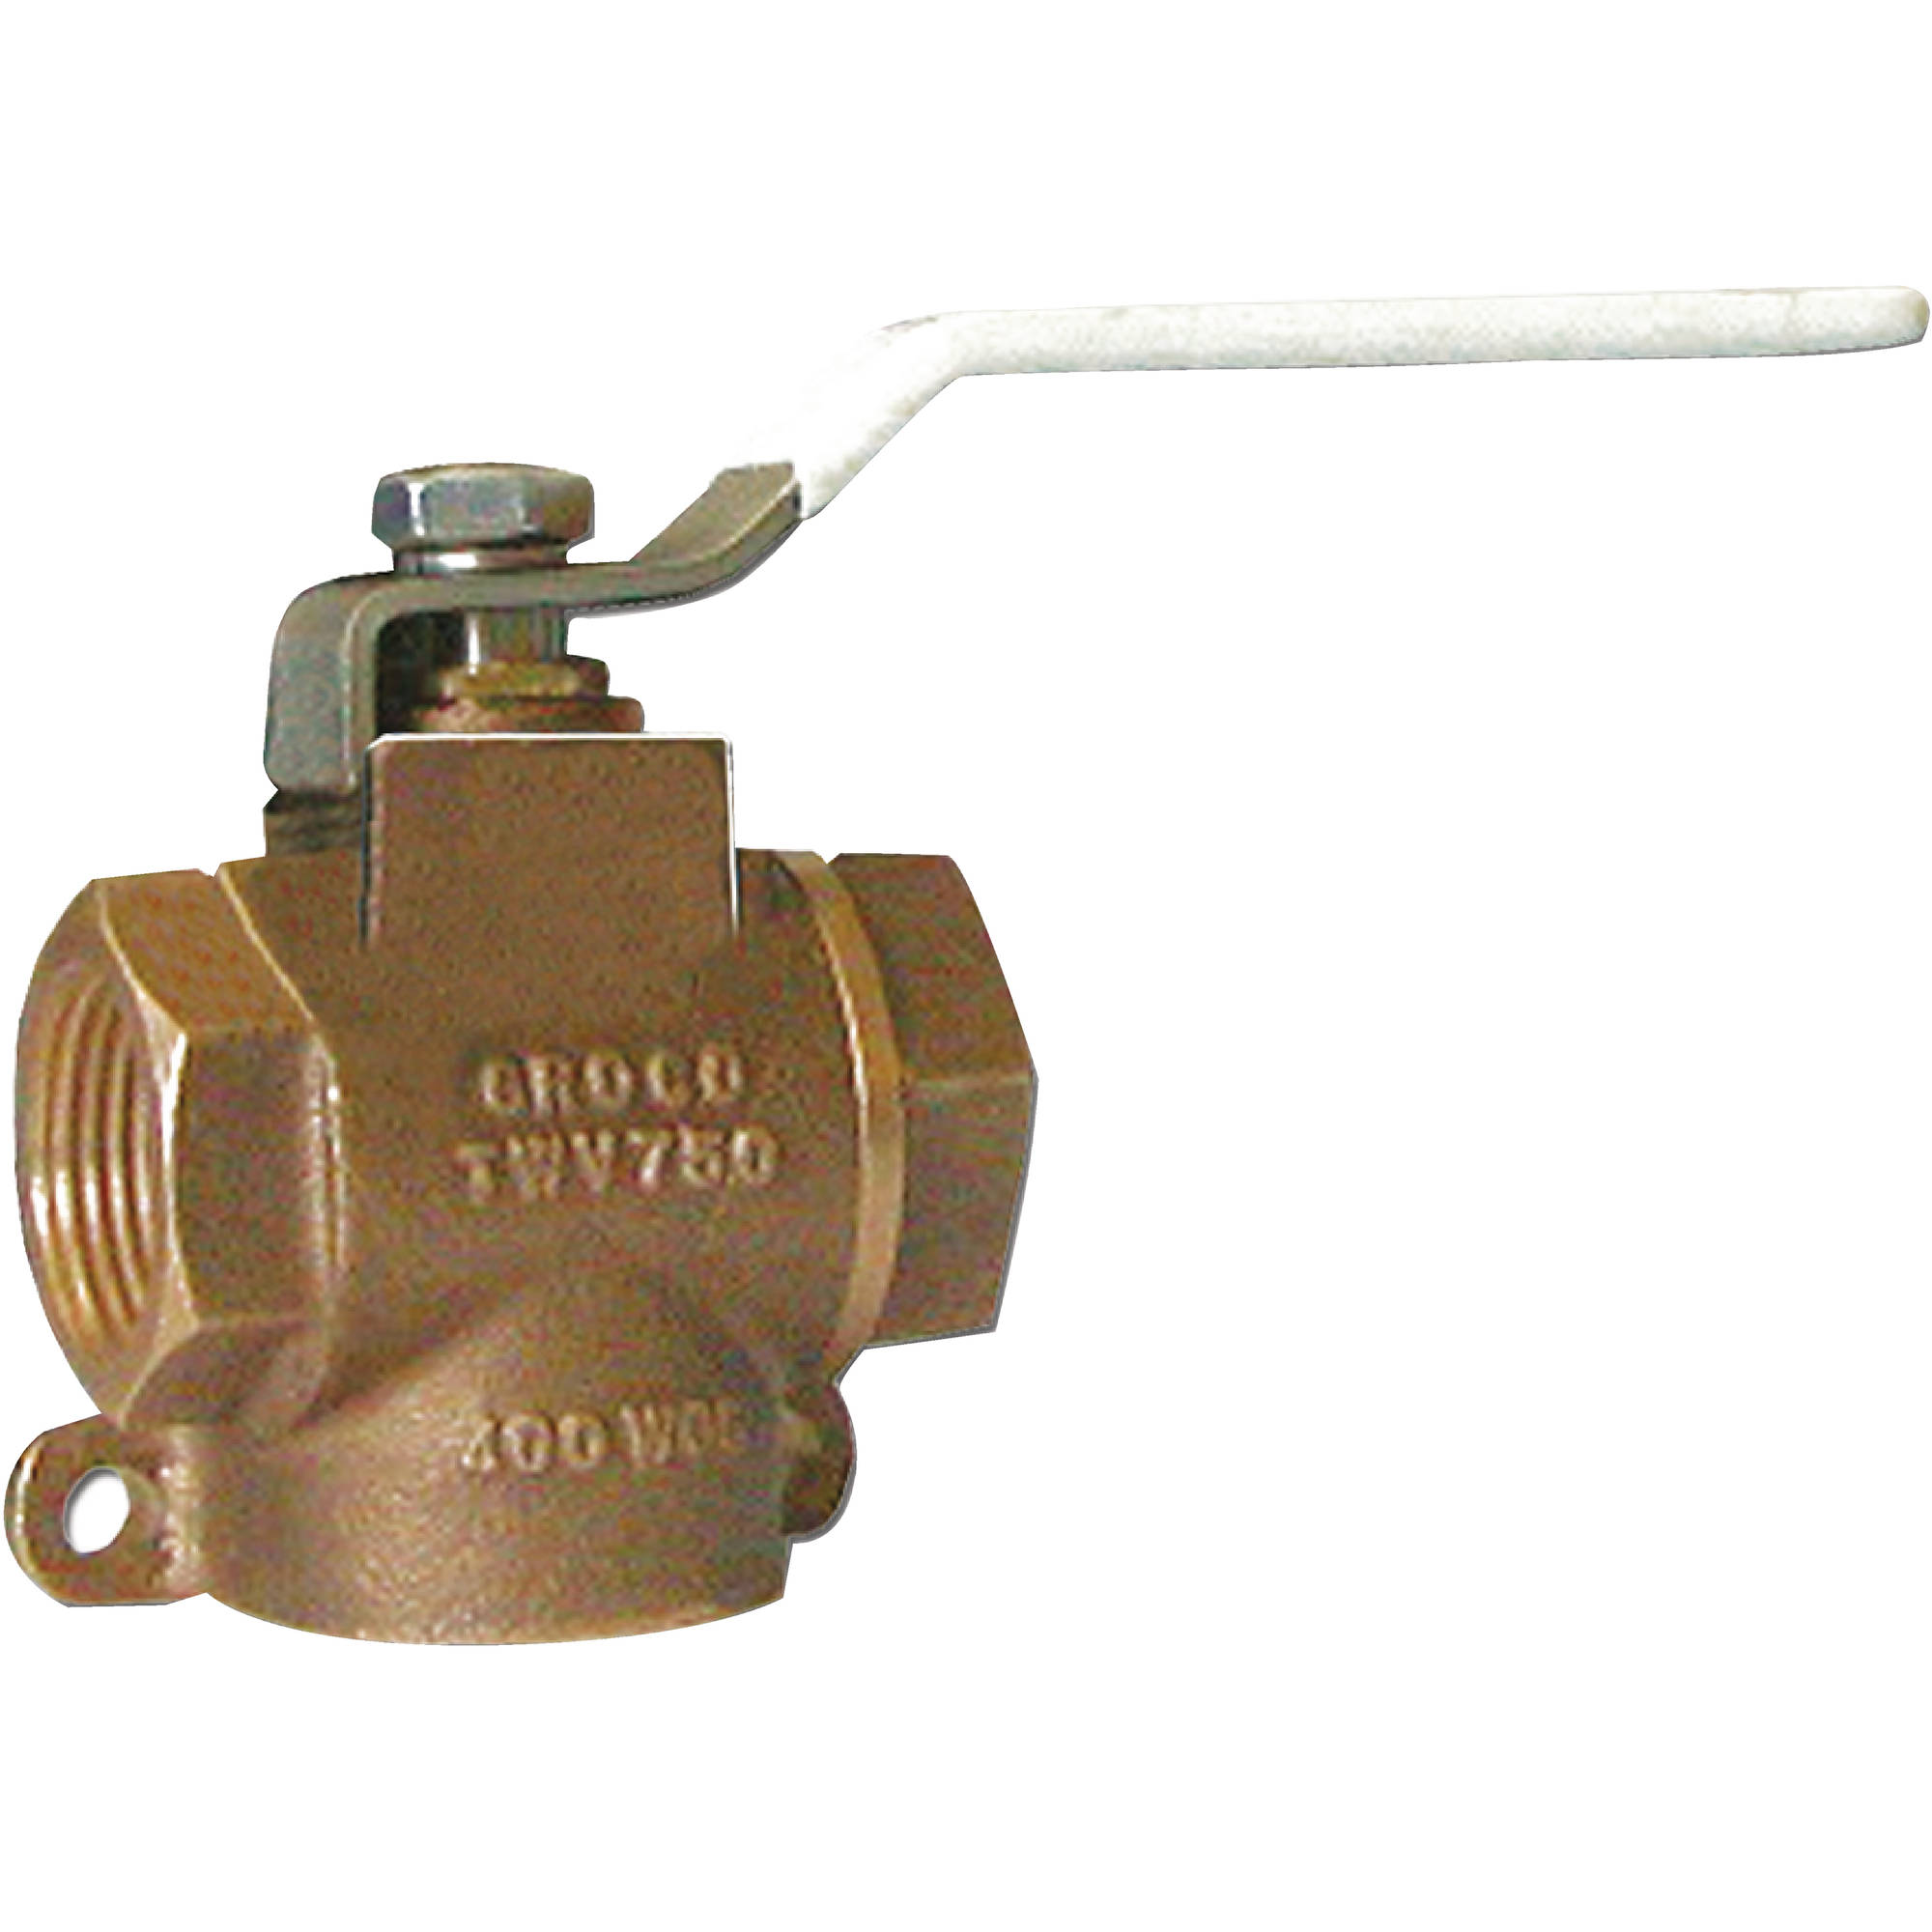 Groco TWV Bronze 3-Way Full Flow Valve